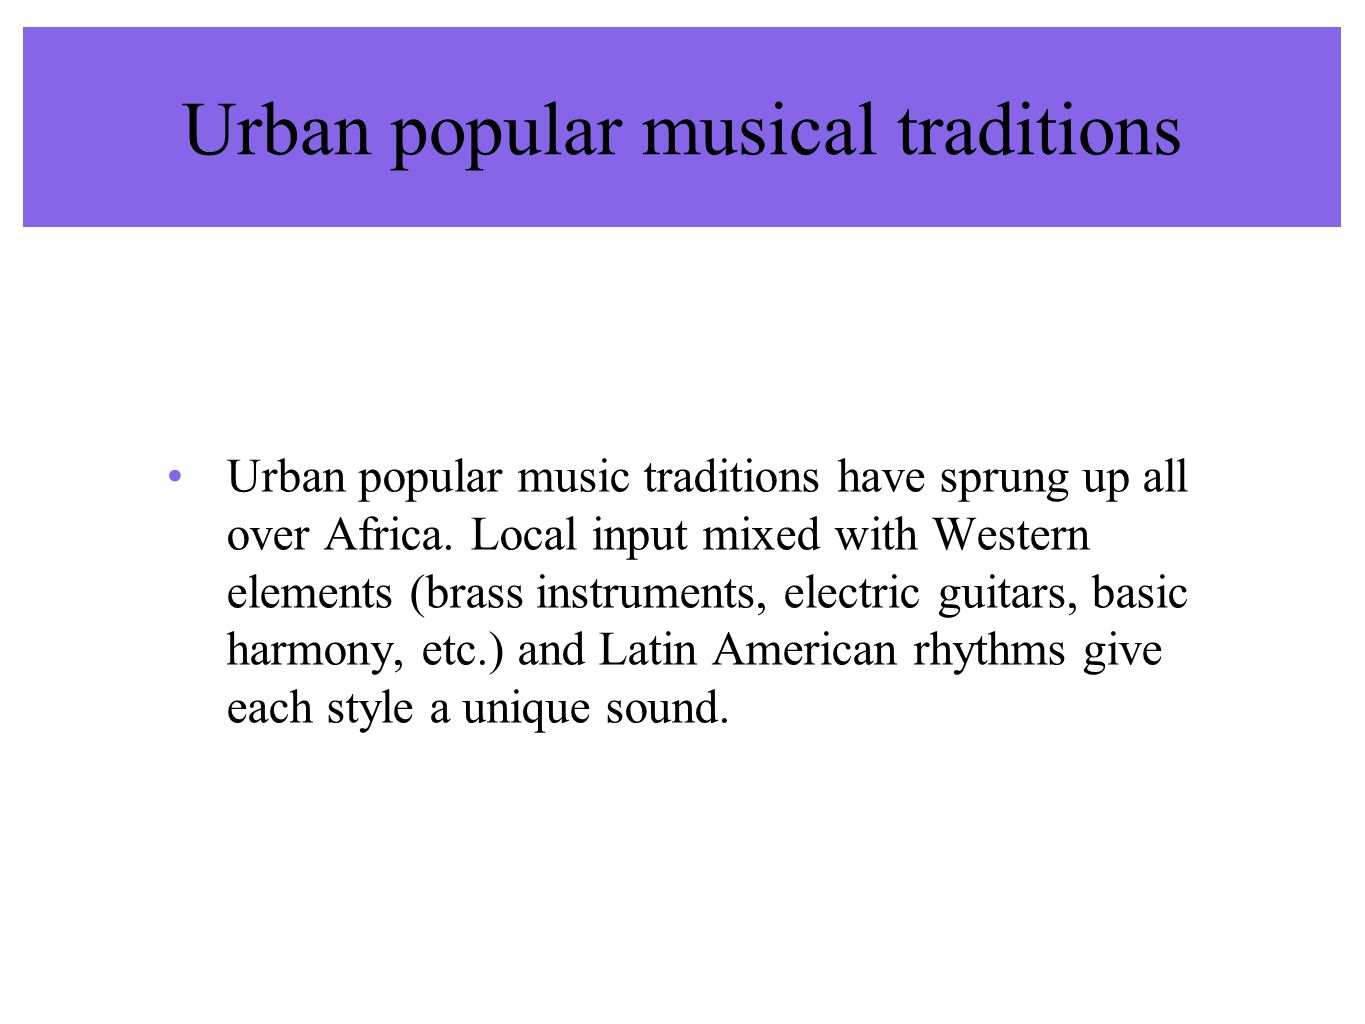 Urban popular musical traditions